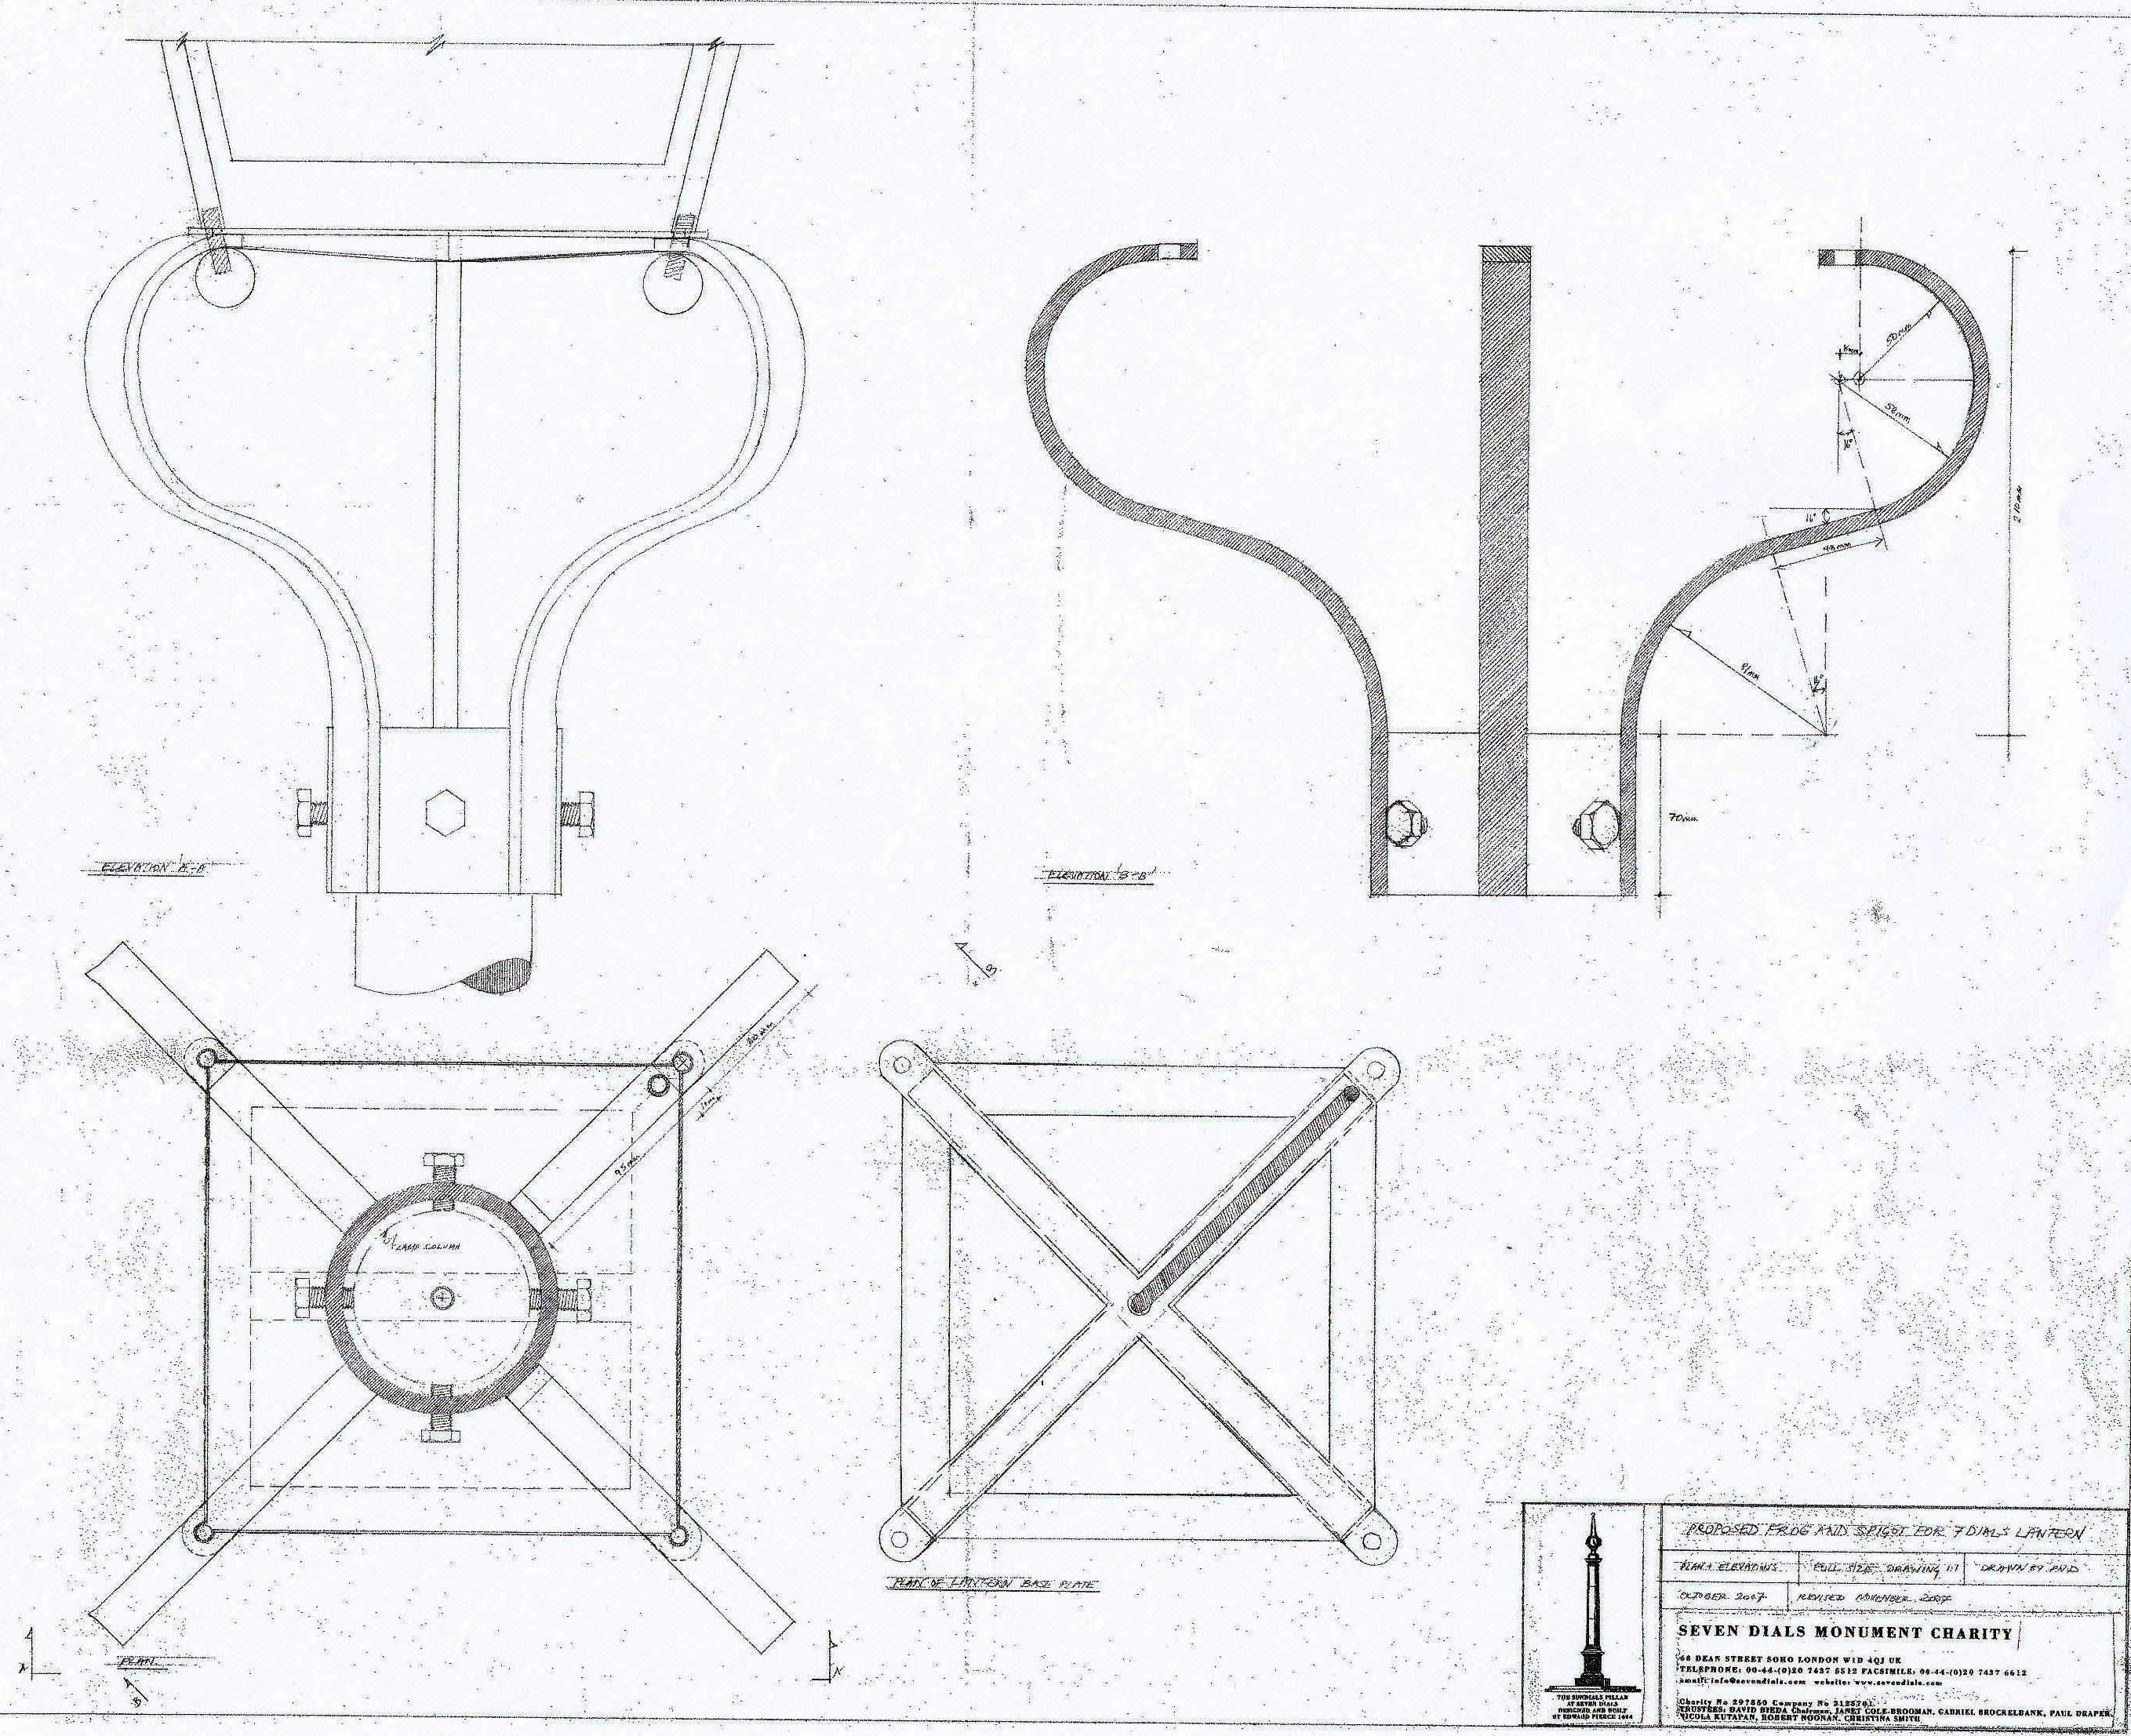 Paul Draper's drawing of the 'frog' for the column version lantern.